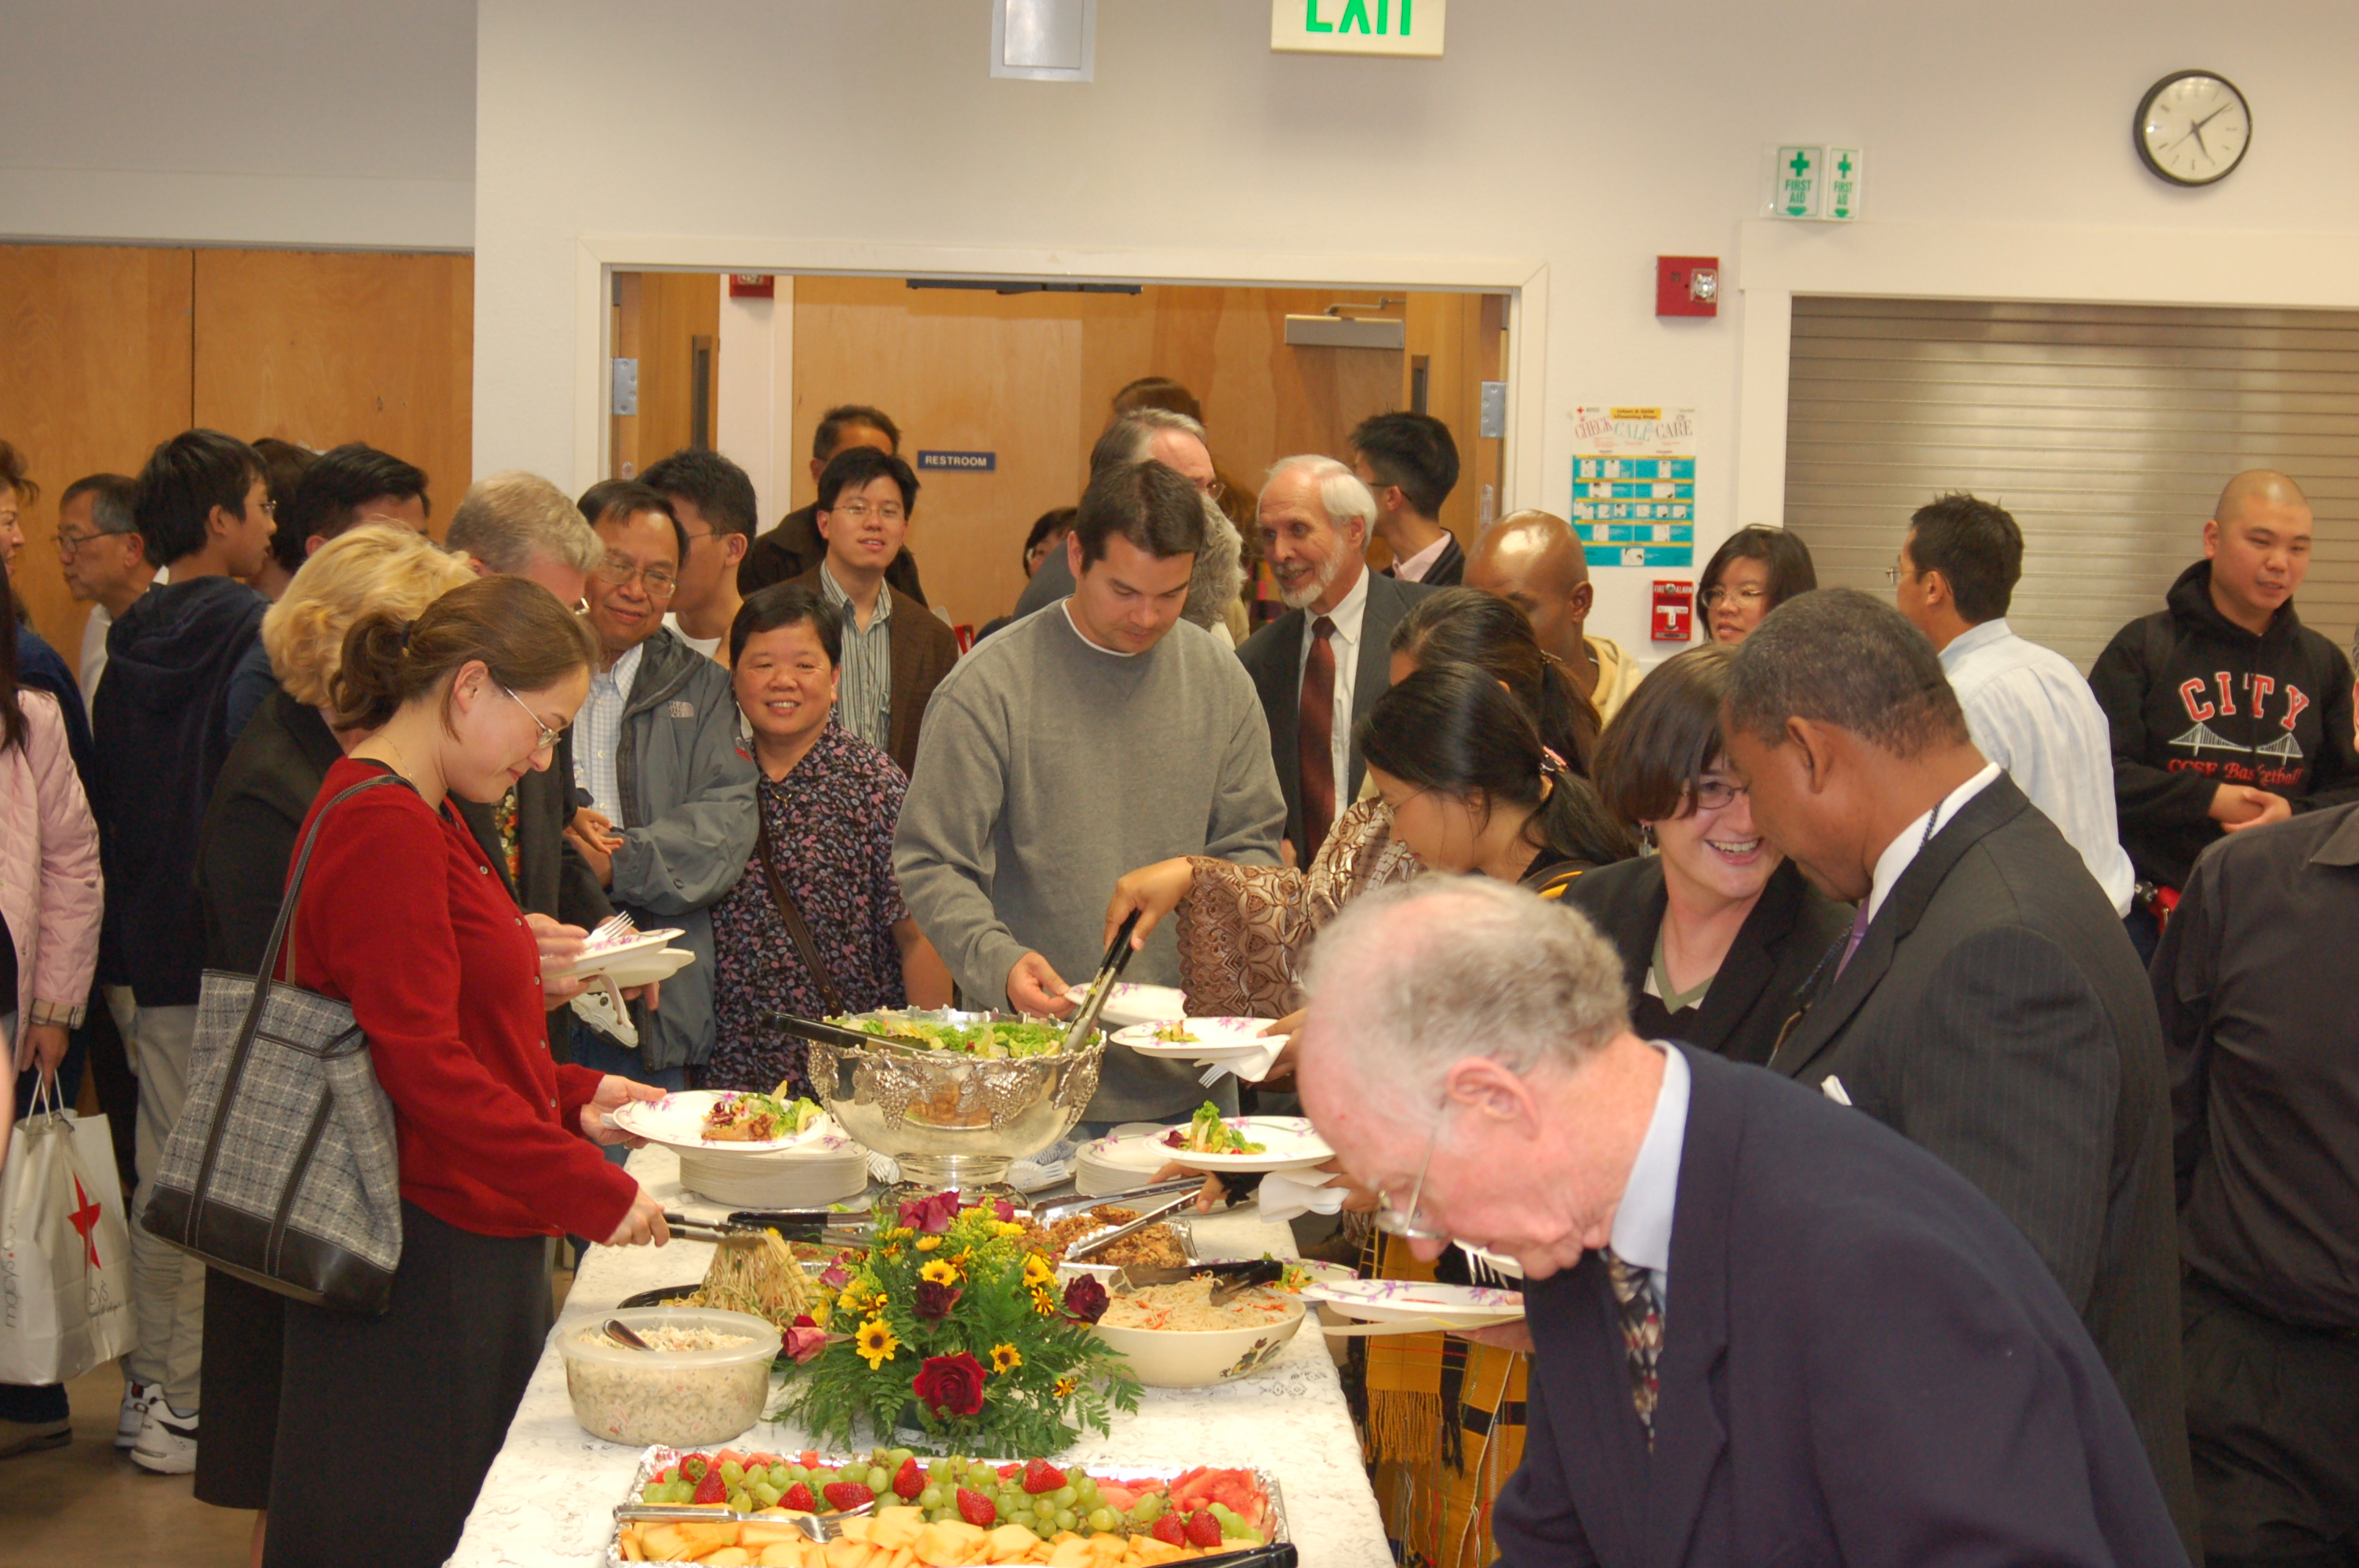 Adventist Church builds database of people not contributing to potluck